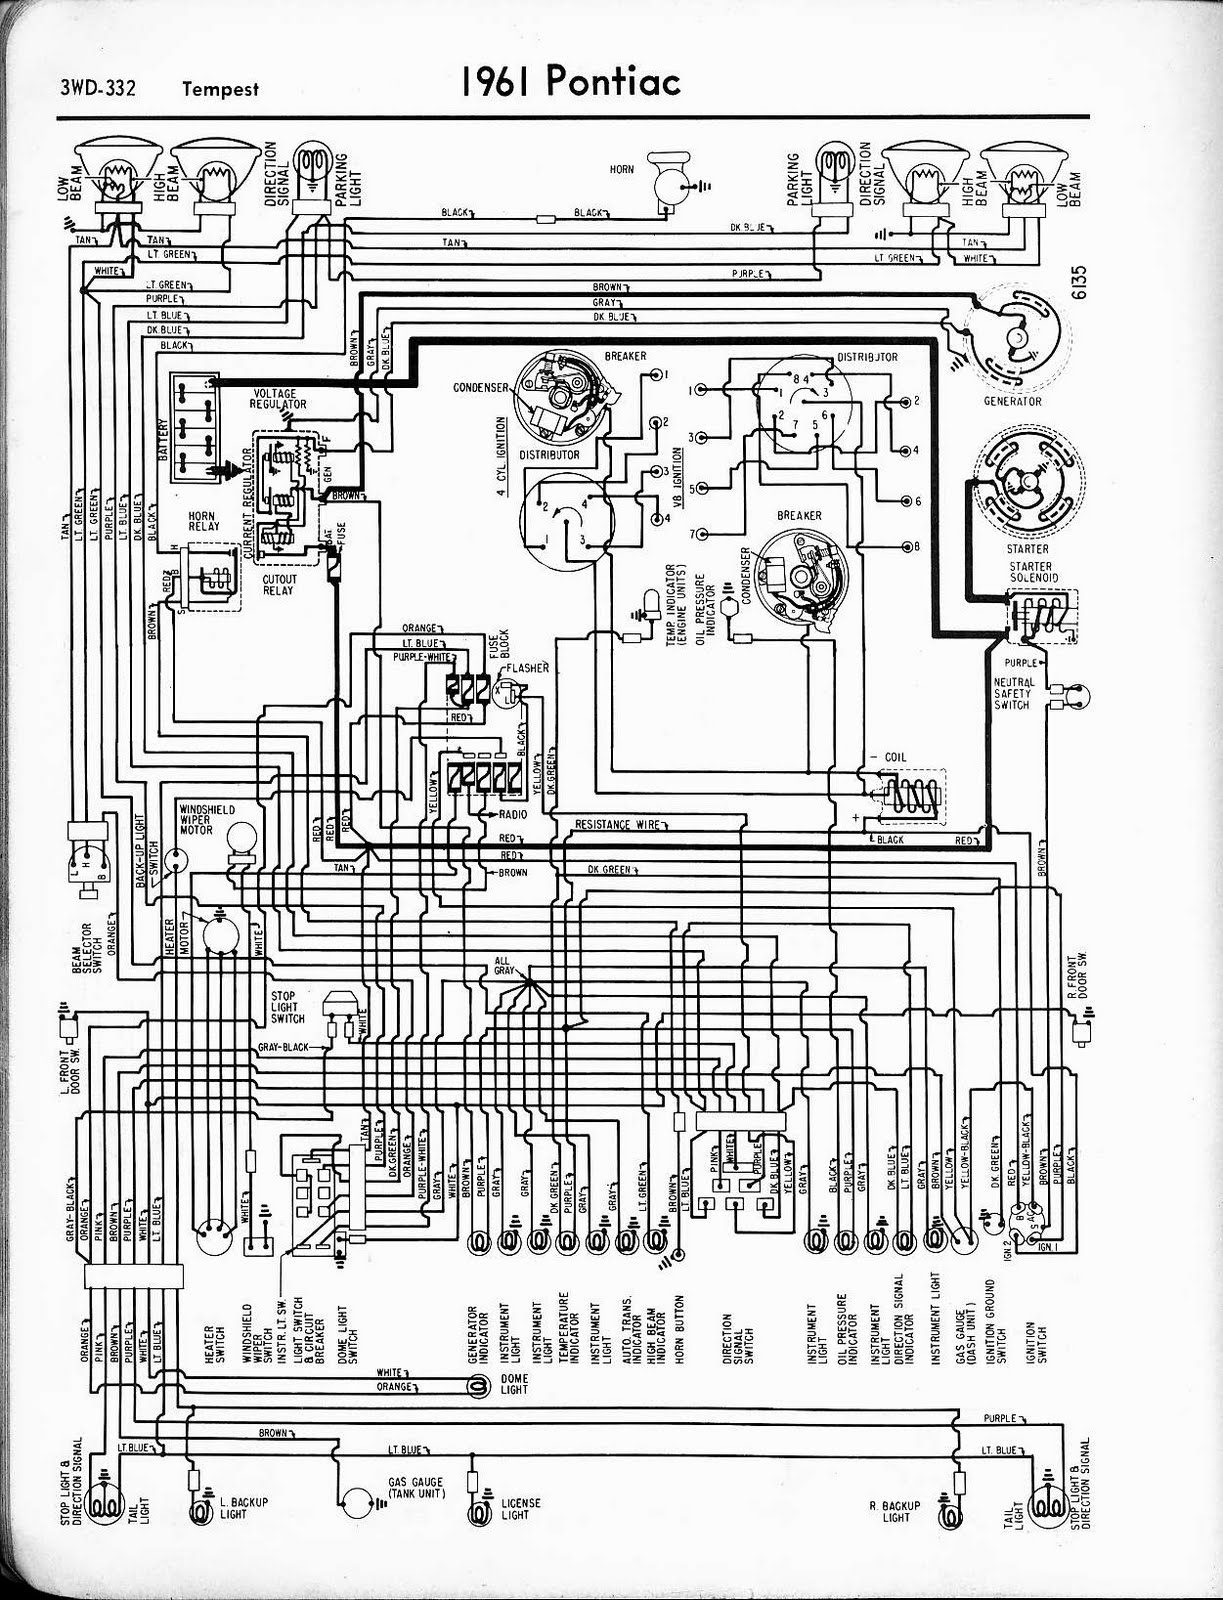 1961 Pontiac Tempest Wiring Diagram on porsche lights wiring diagram